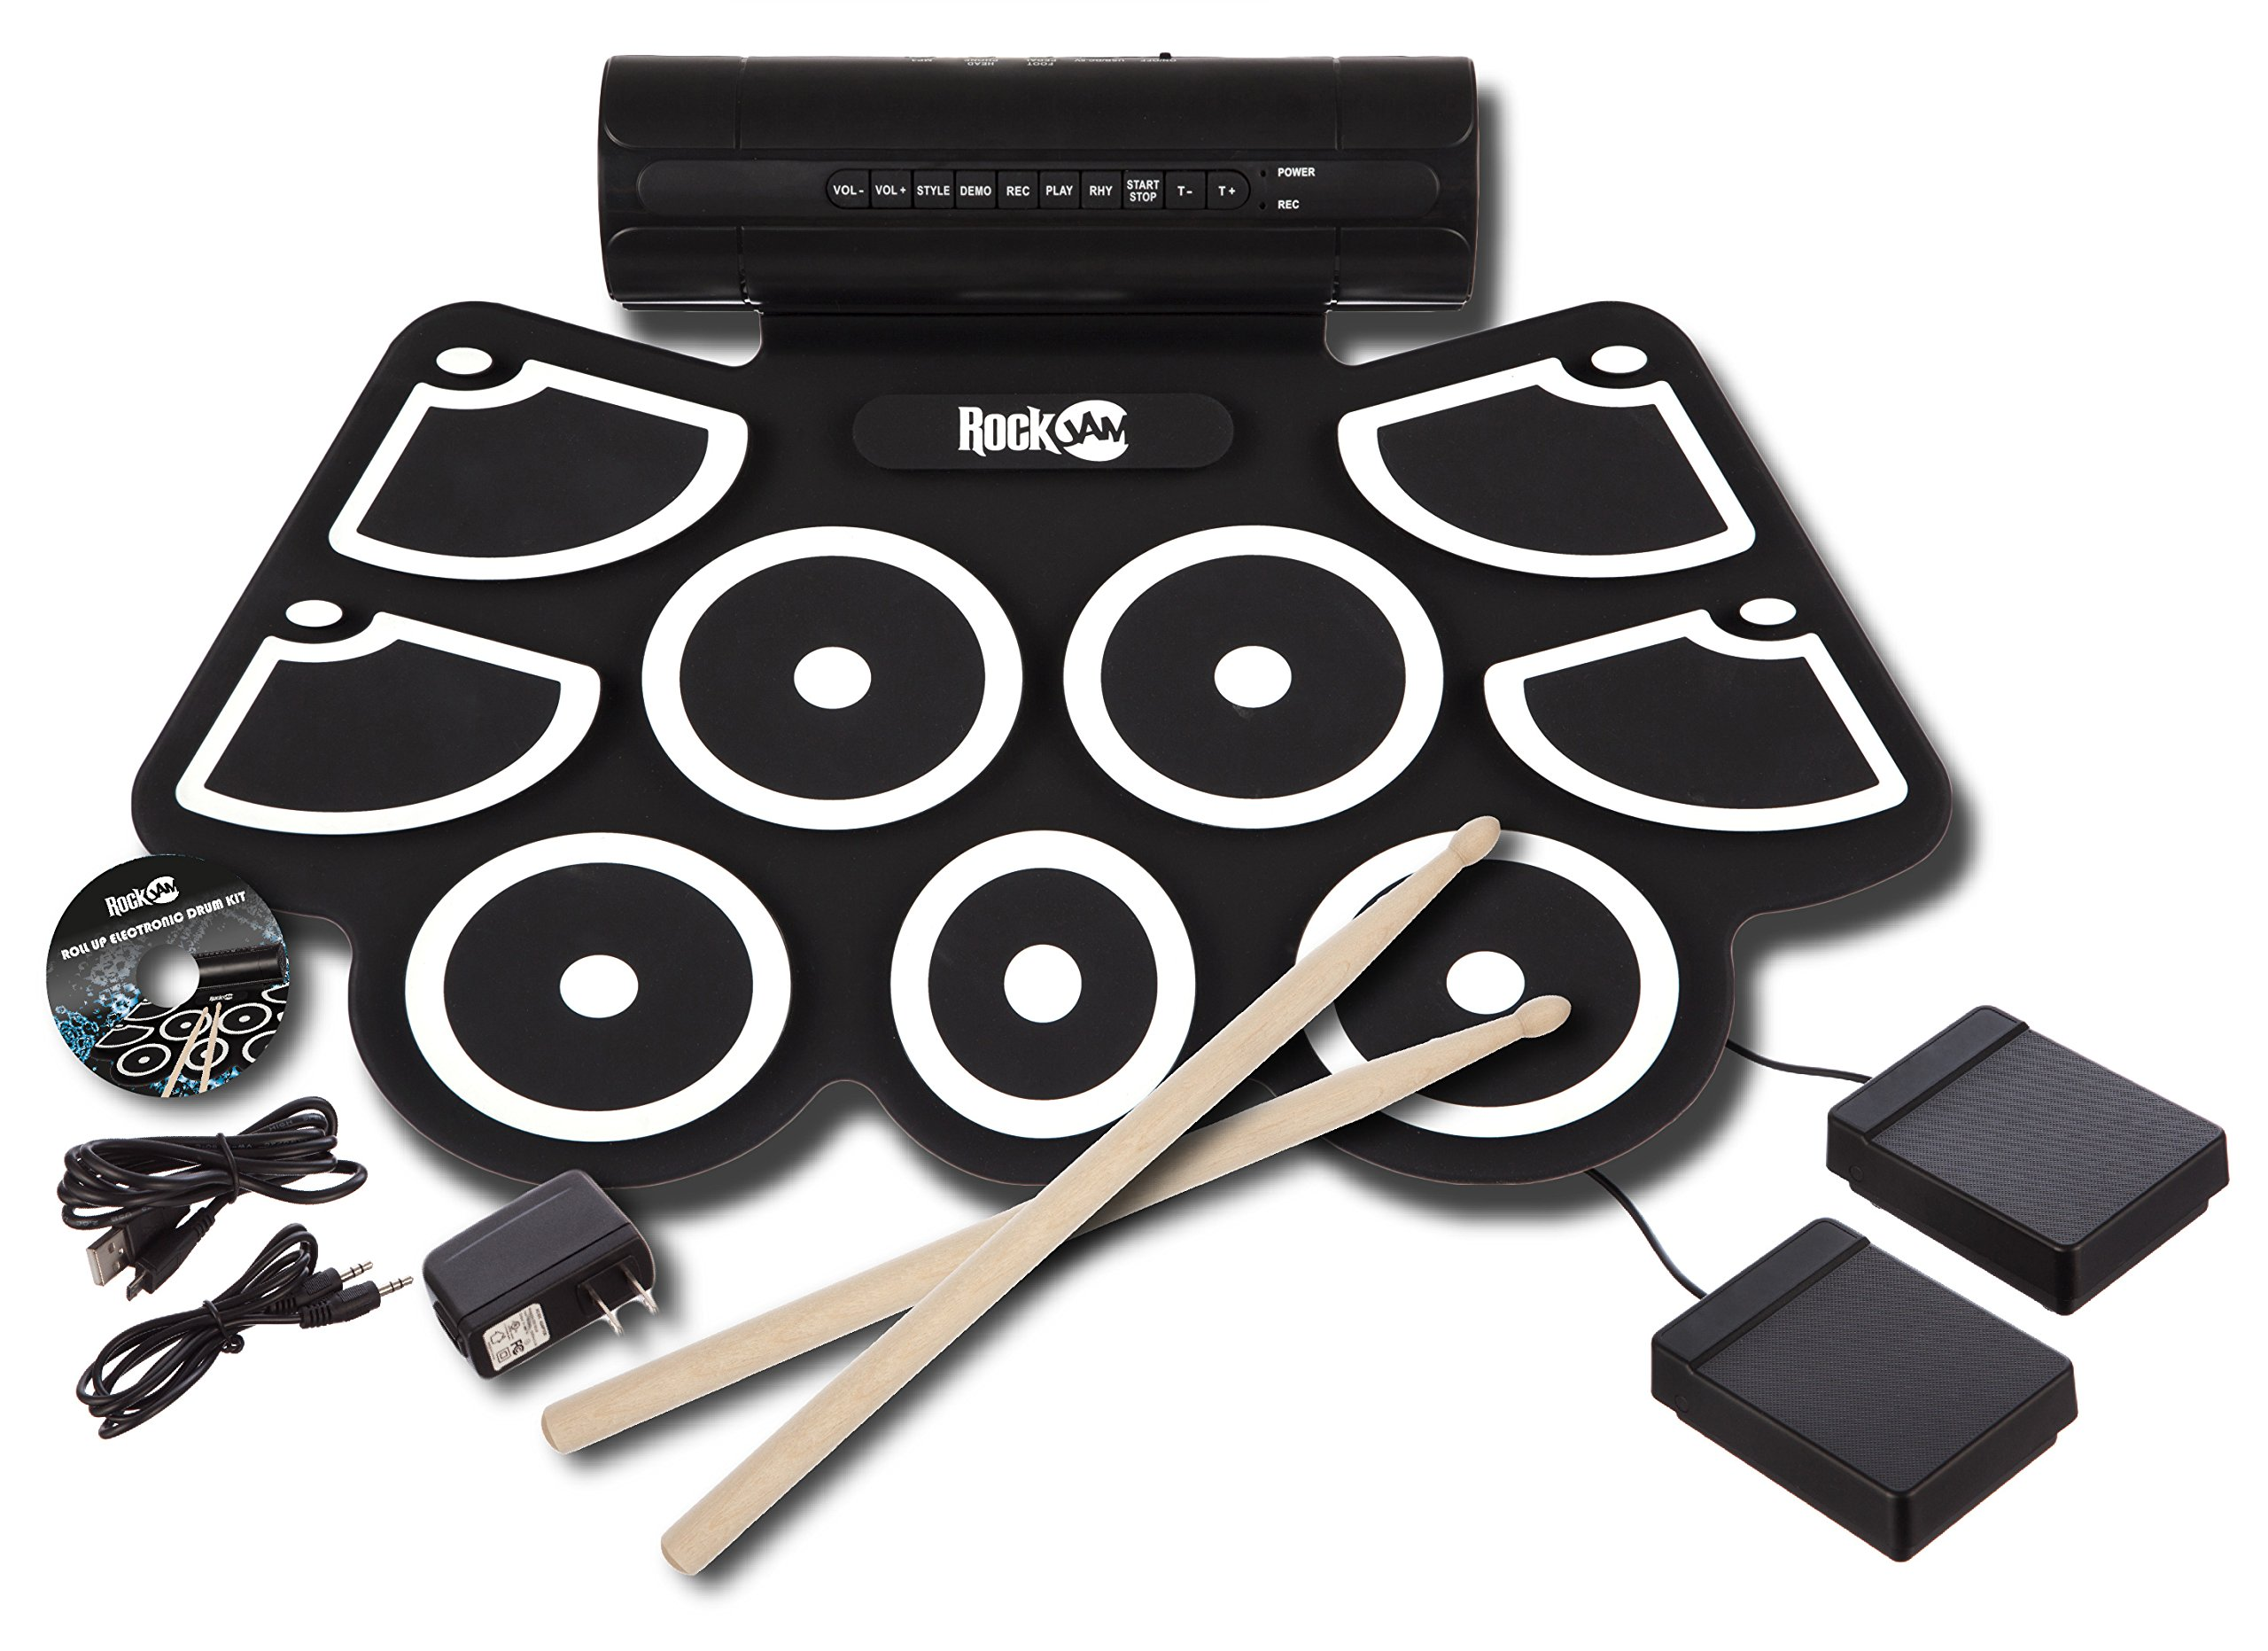 RockJam Portable MIDI Electronic Roll Up Drum Kit with Built in Speakers, Power Supply, Foot Pedals and Drumsticks by RockJam